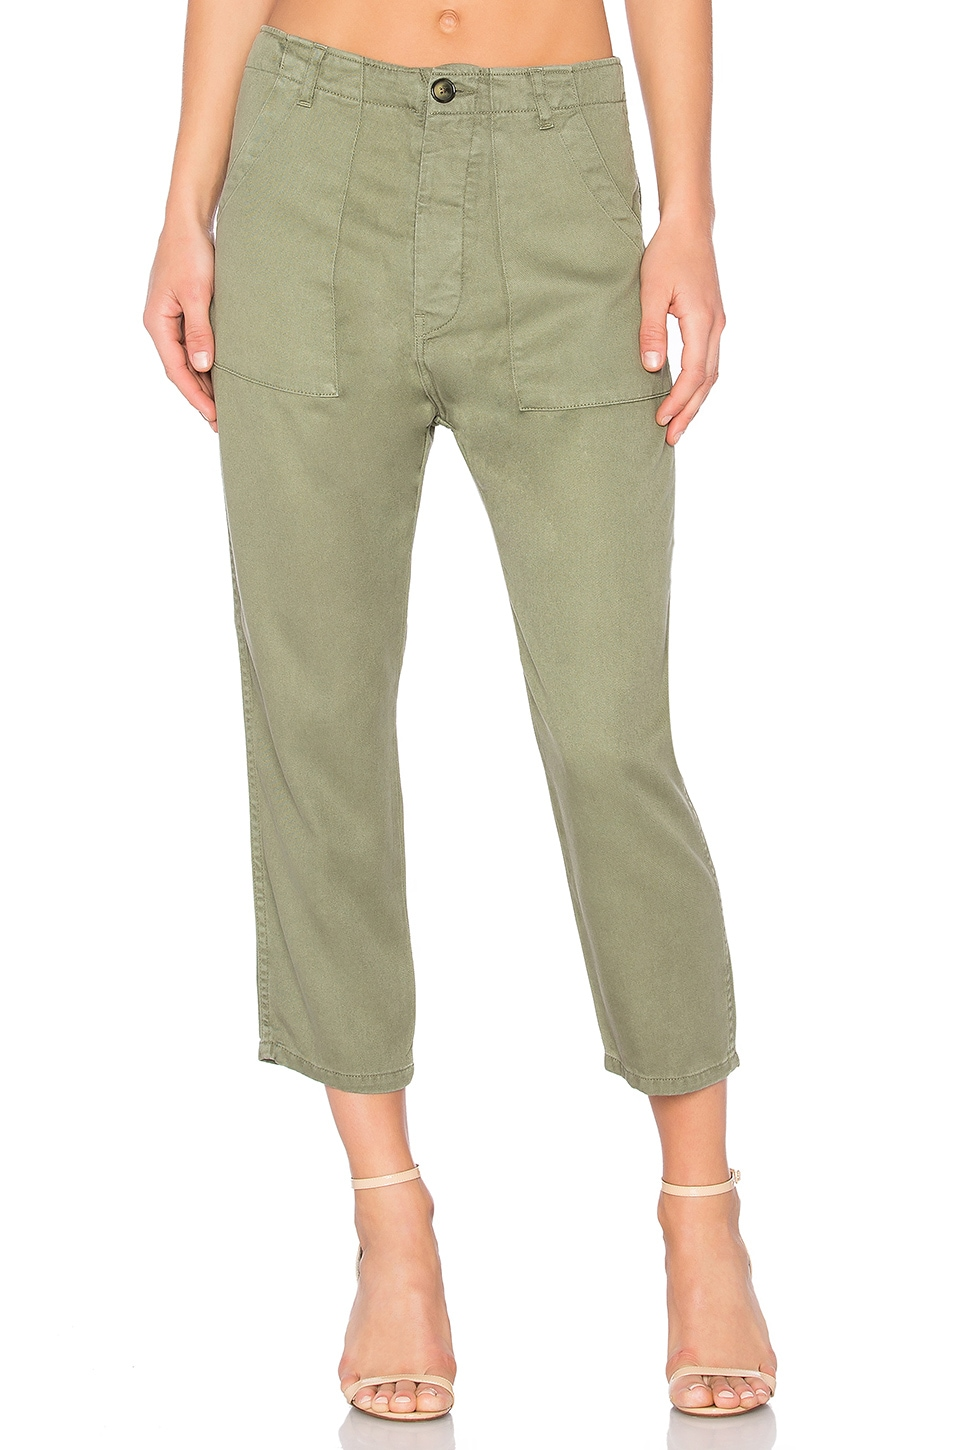 Cargo Pant by Etienne Marcel